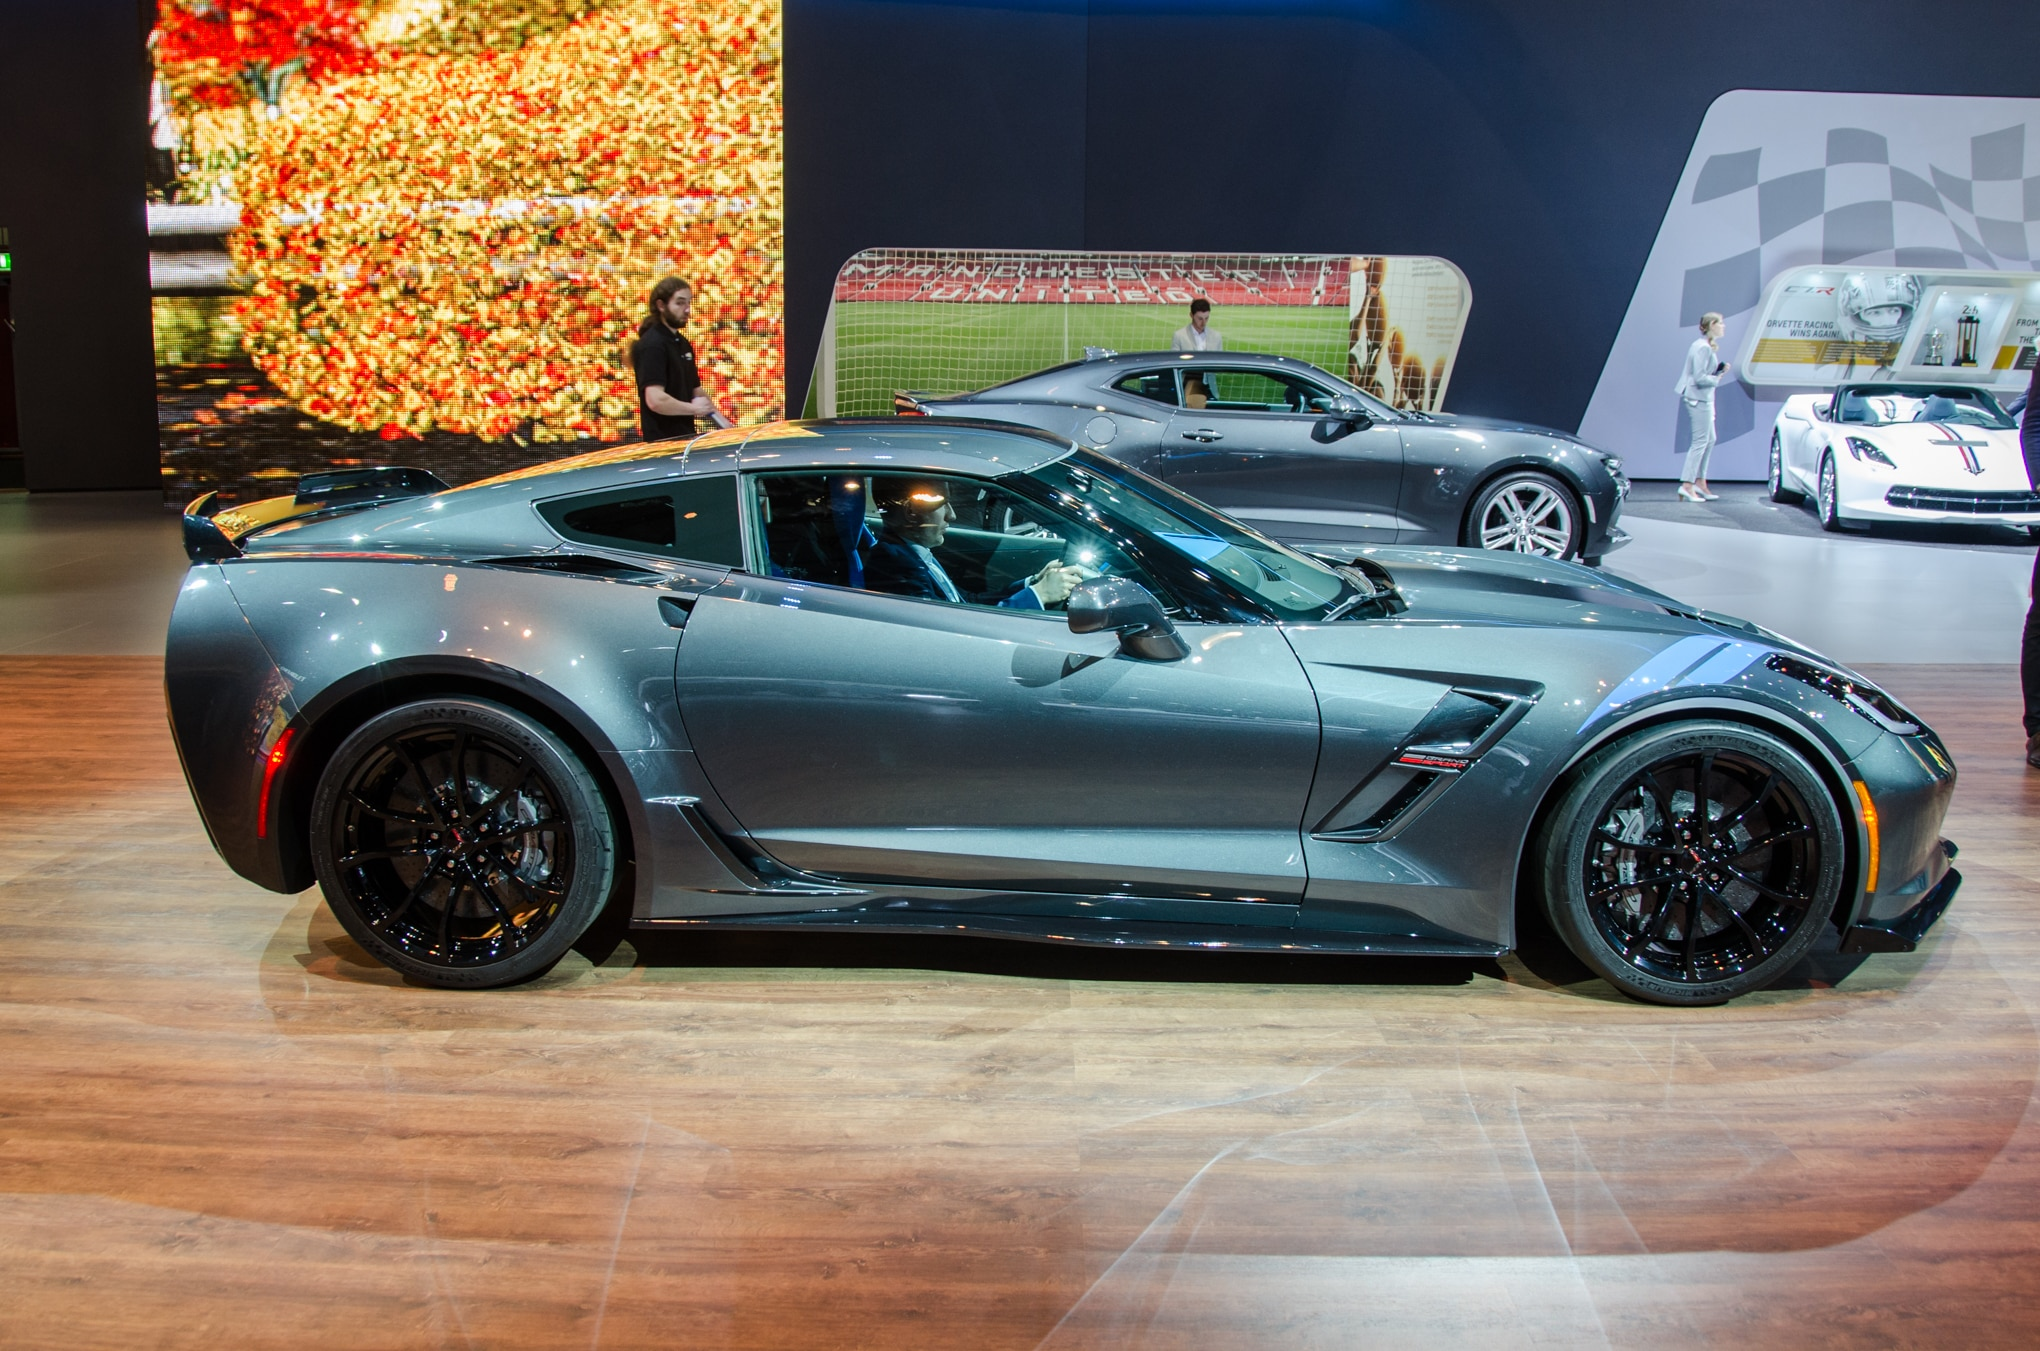 Chevrolet Corvette Grand Sport 2017, con 460 hp